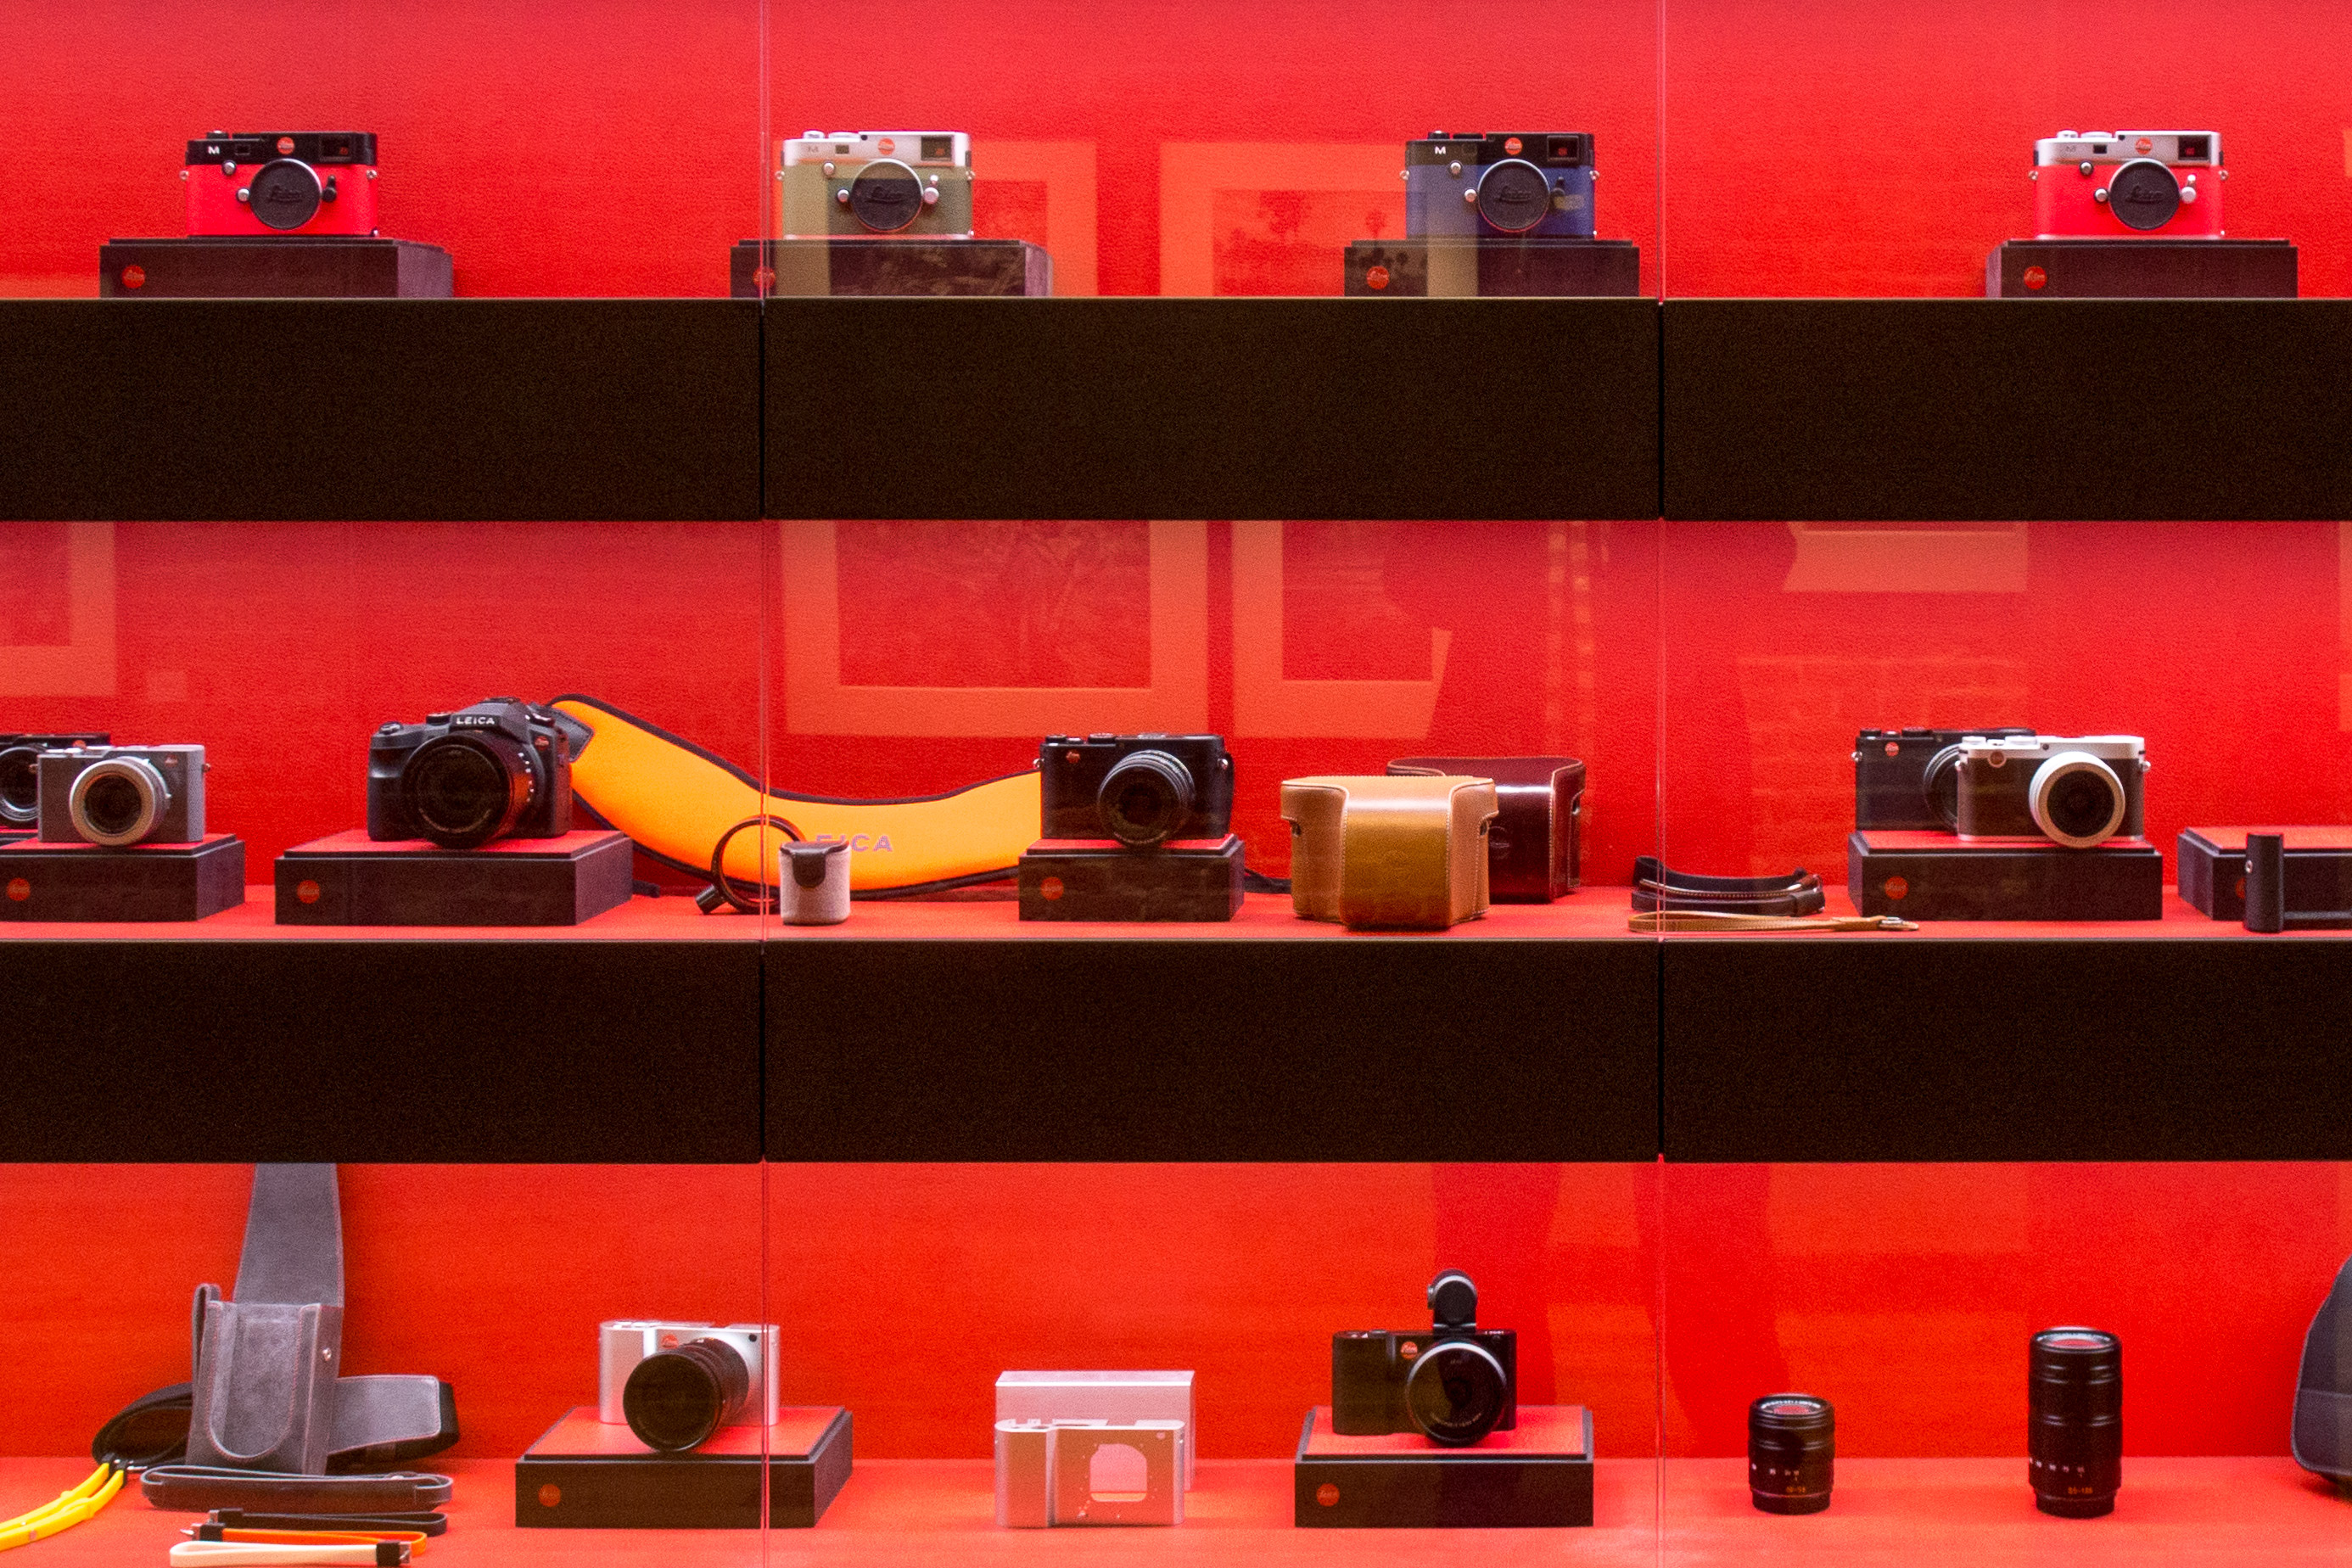 Inside the Leica store